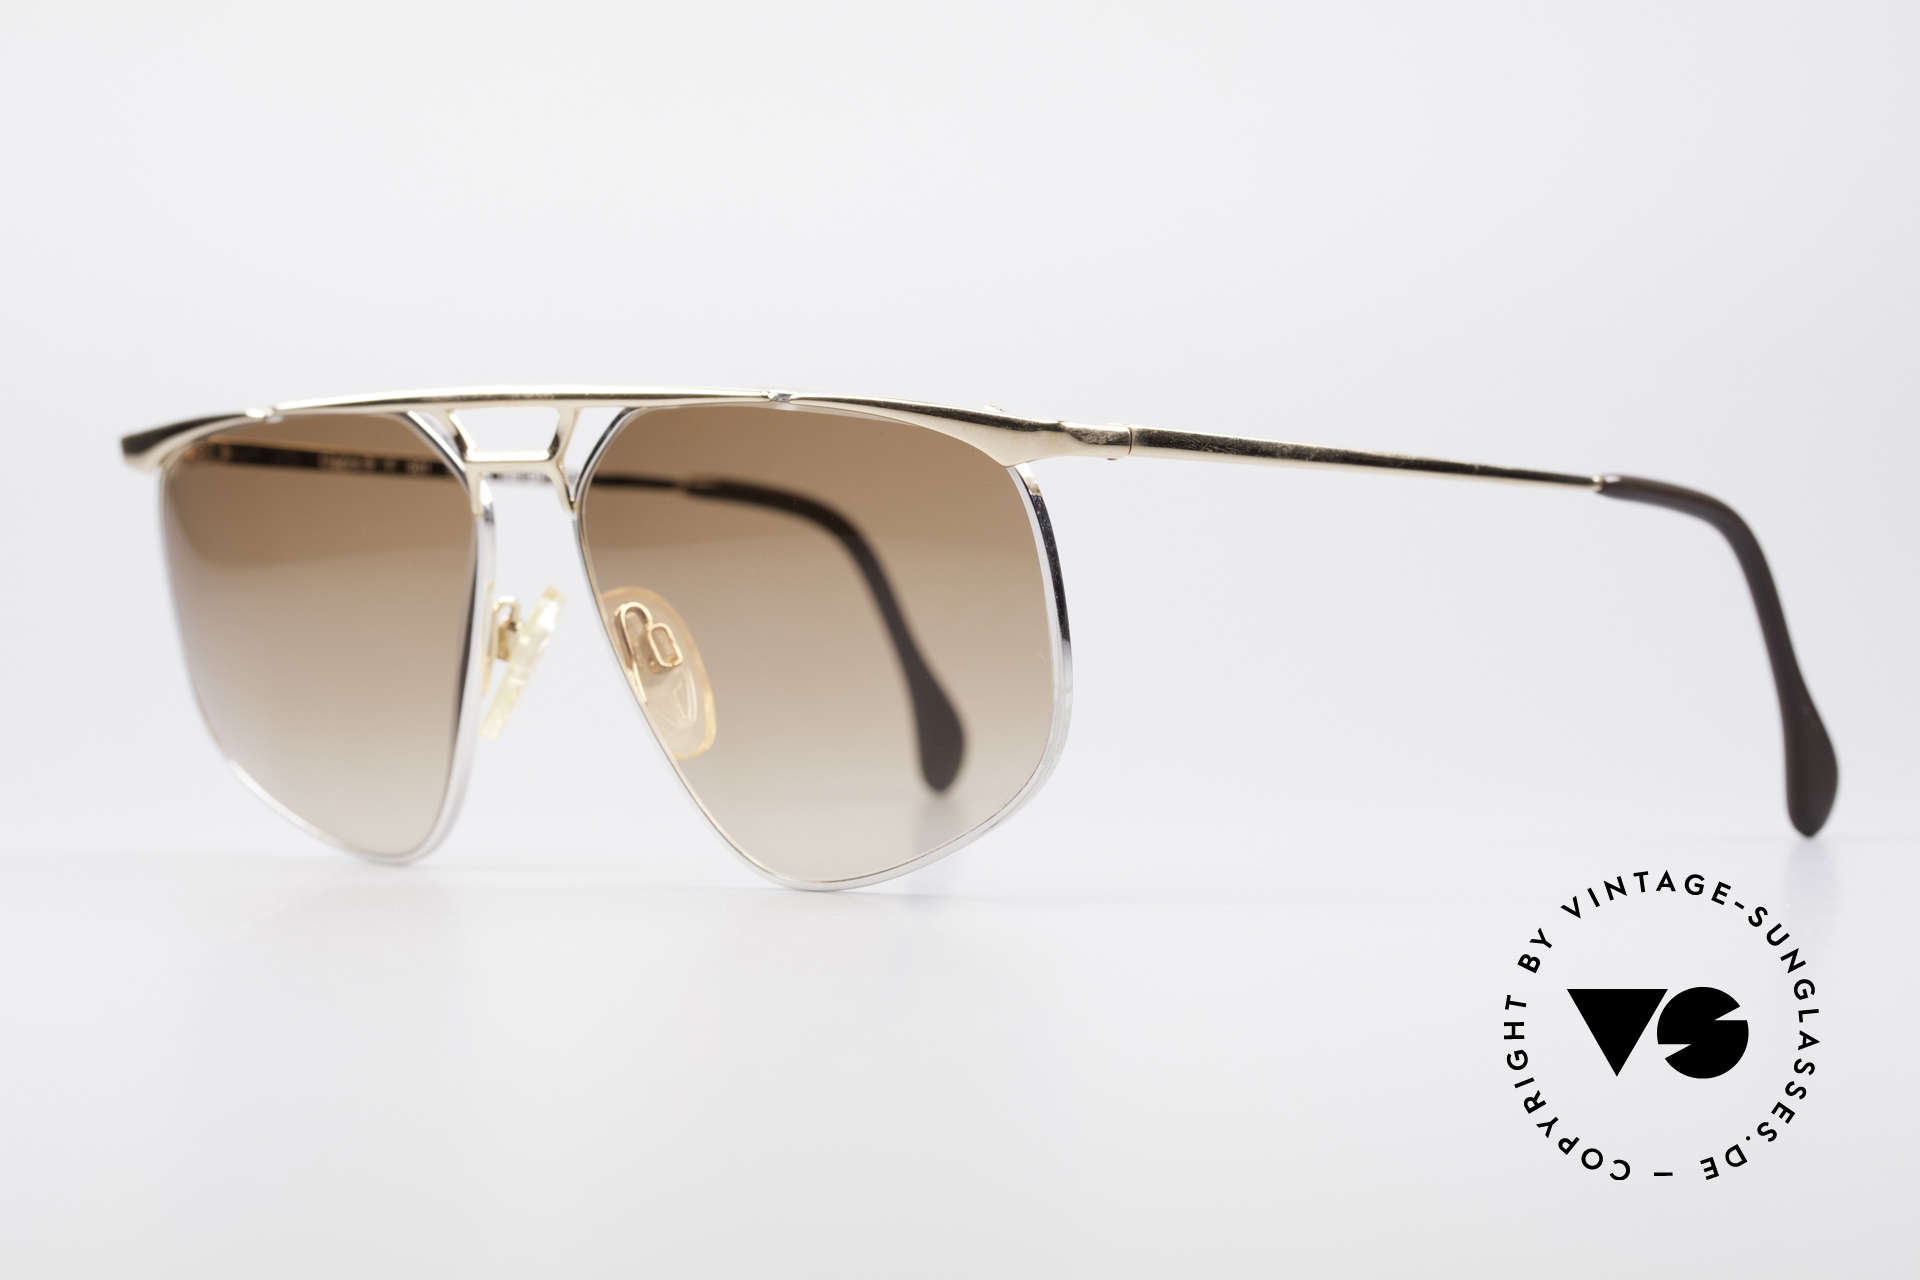 Zollitsch Cadre 9 18kt Gold Plated Sunglasses, tangible, high-end quality (made in WEST Germany), Made for Men